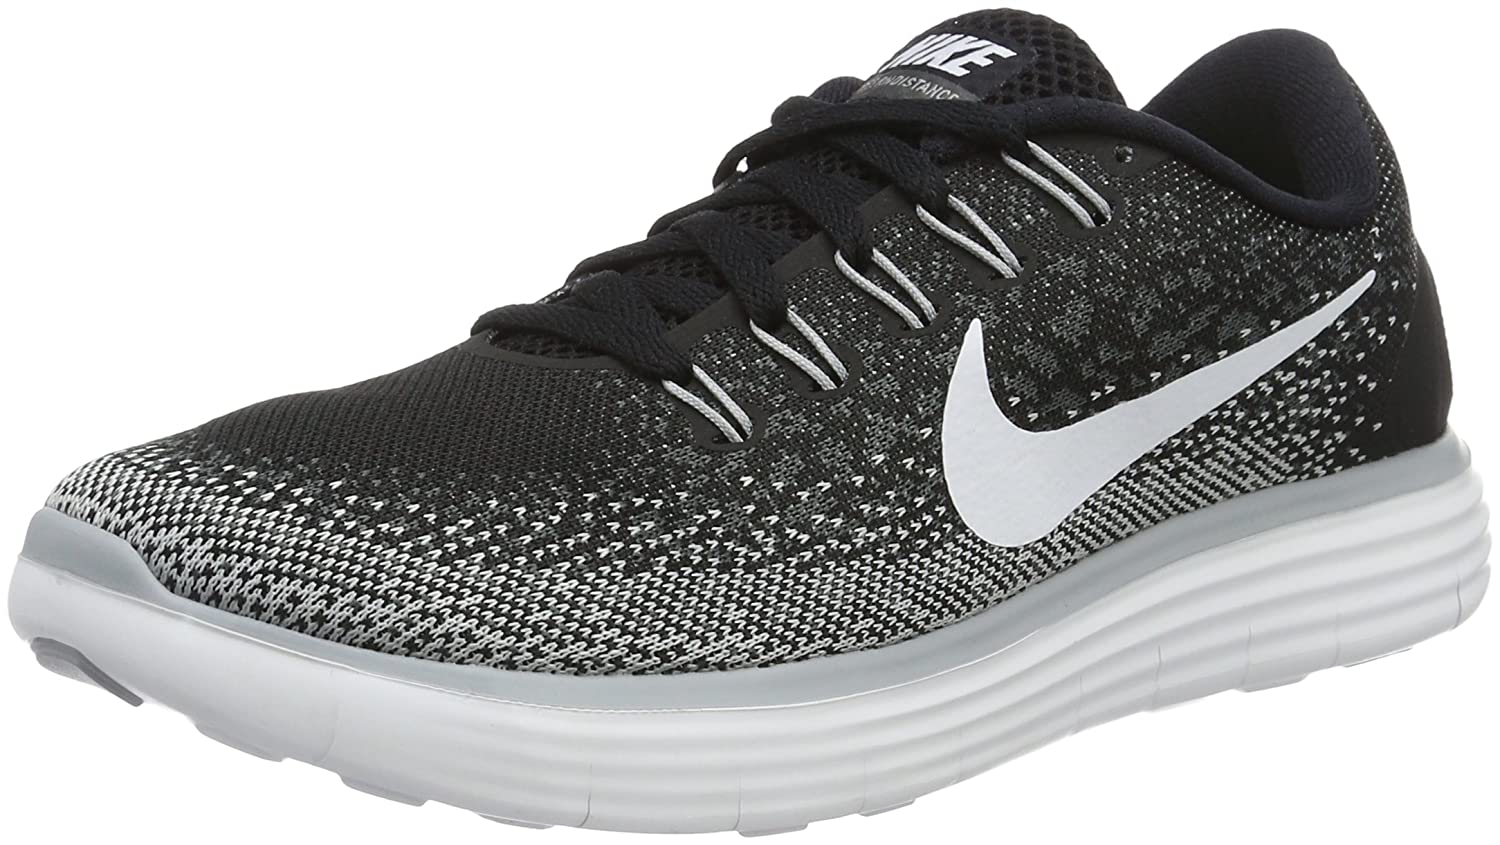 newest collection 9e58a 11a19 Nike WMNS Free RN Distance, Womens Running Shoes